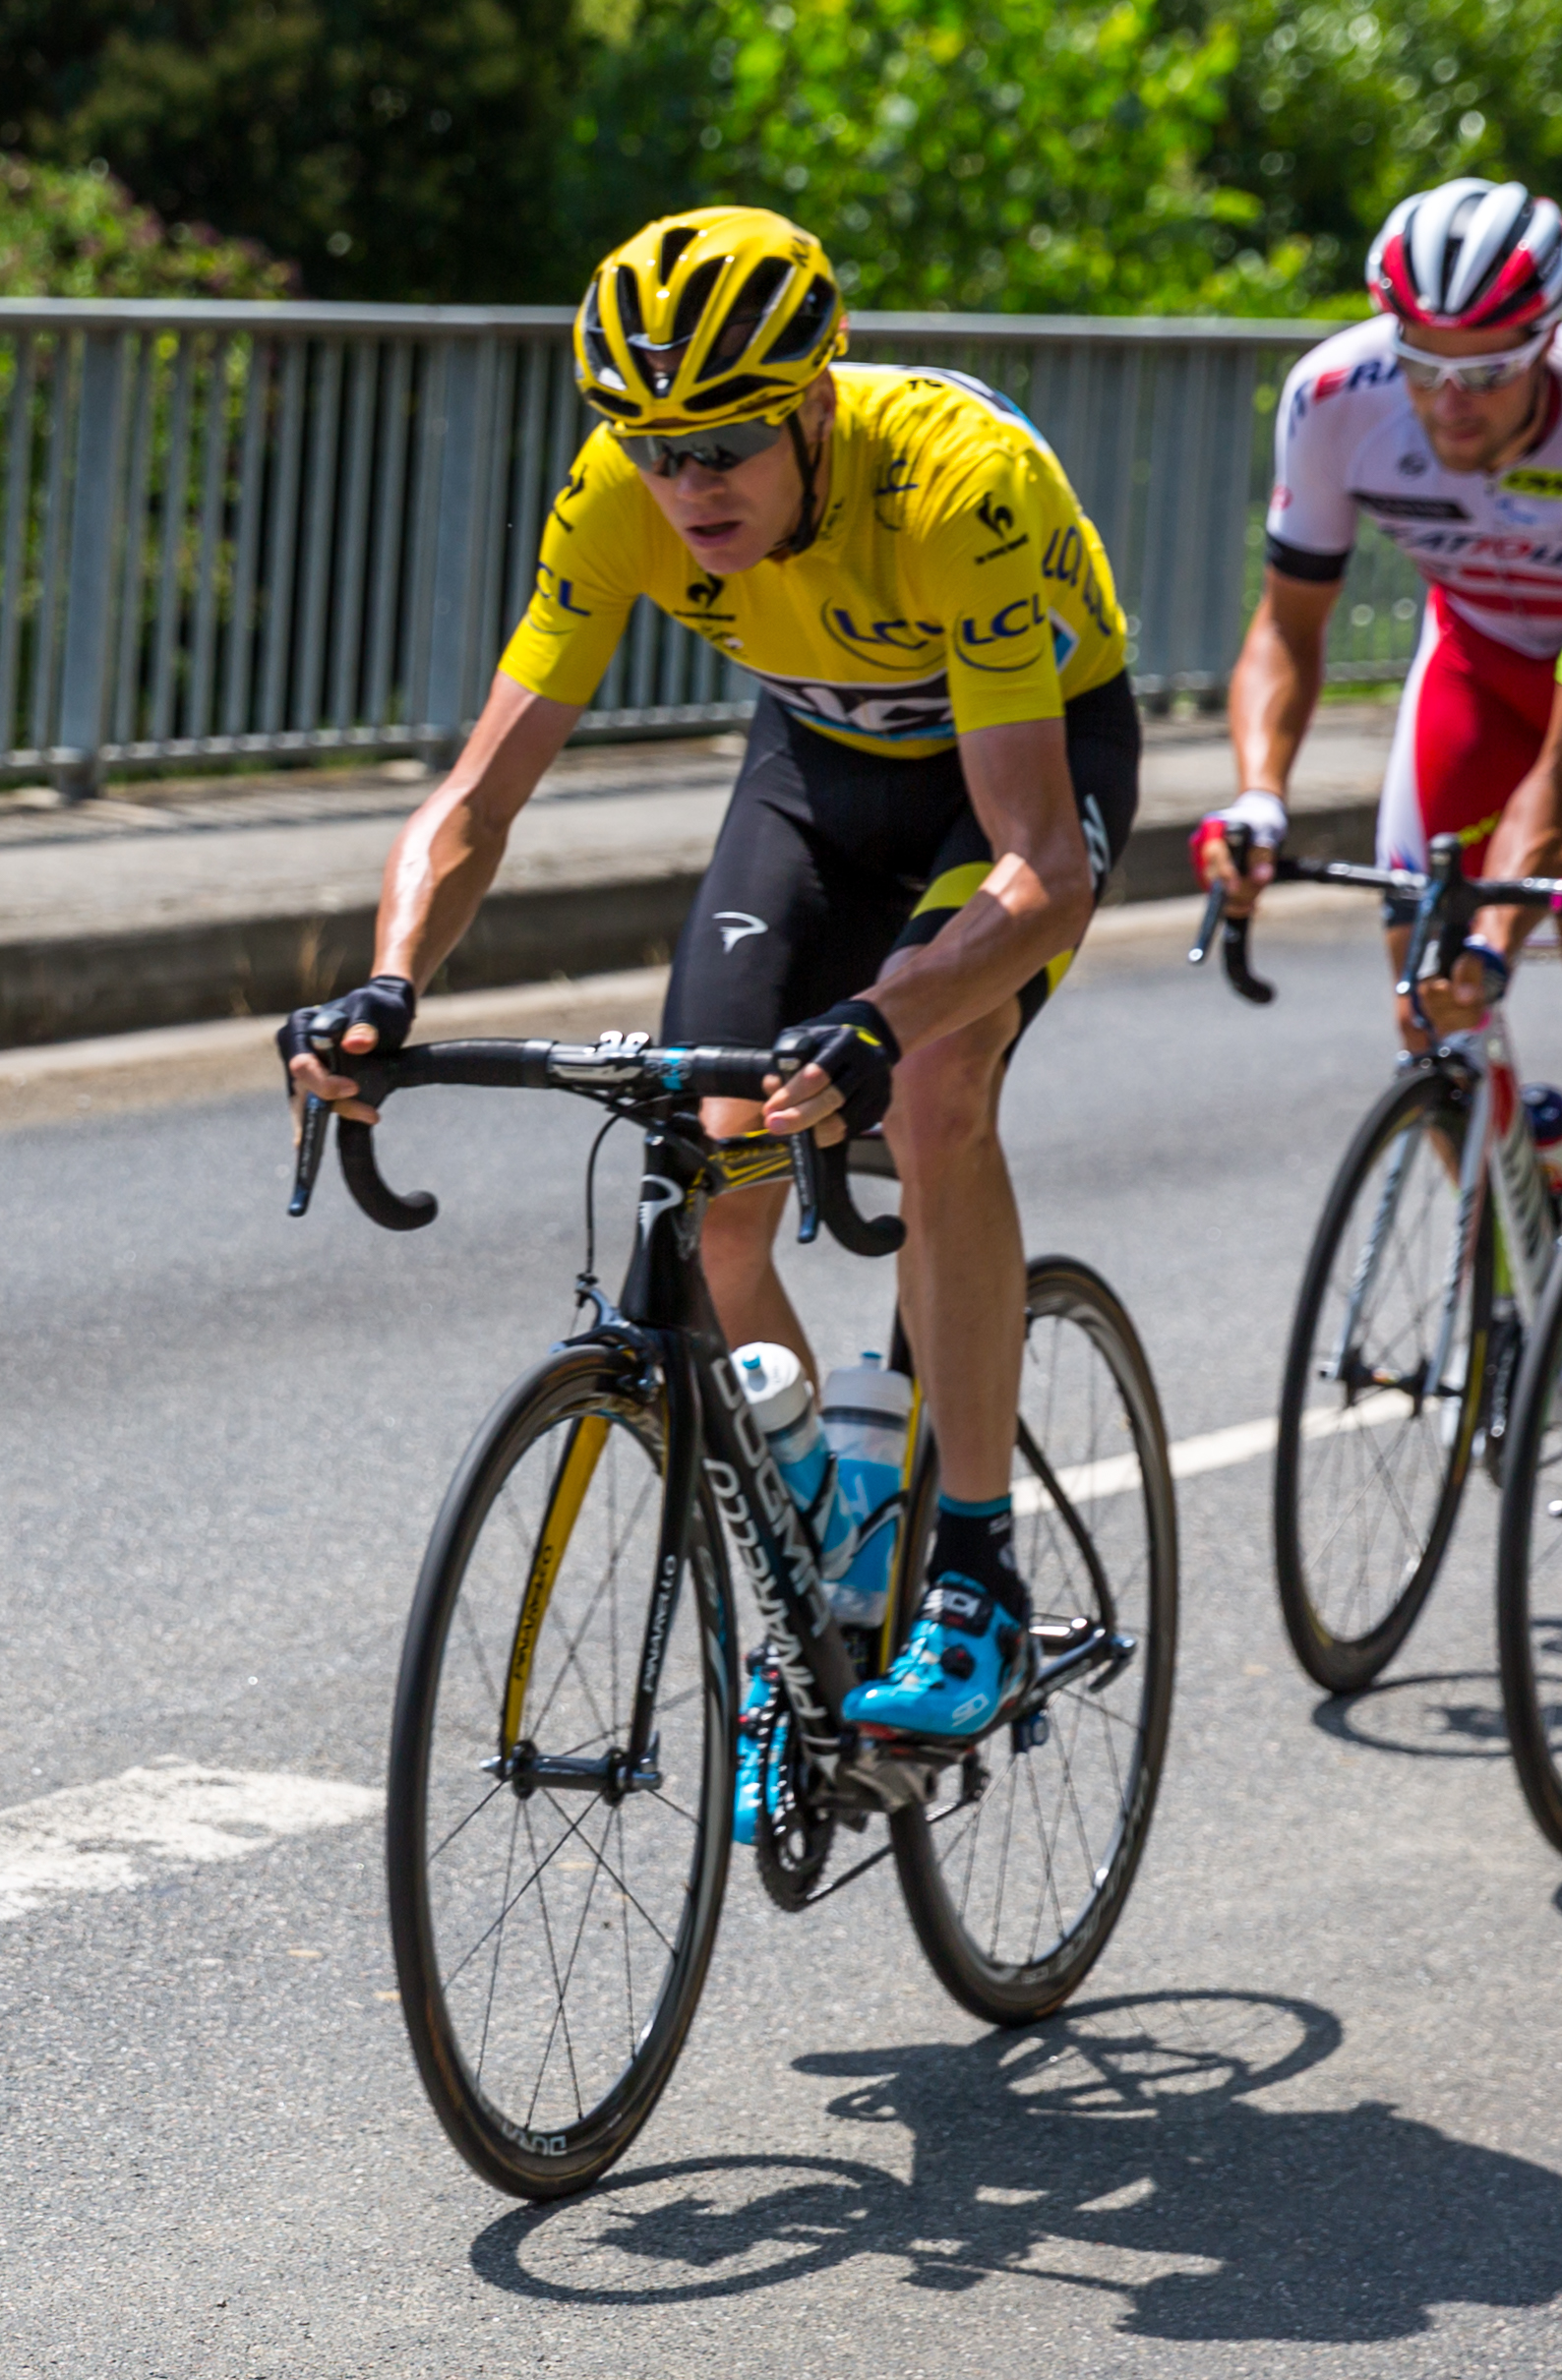 Chris_Froome%2C_TDF_2015%2C_%C3%A9tape_13%2C_Montgiscard.jpg?profile=RESIZE_710x